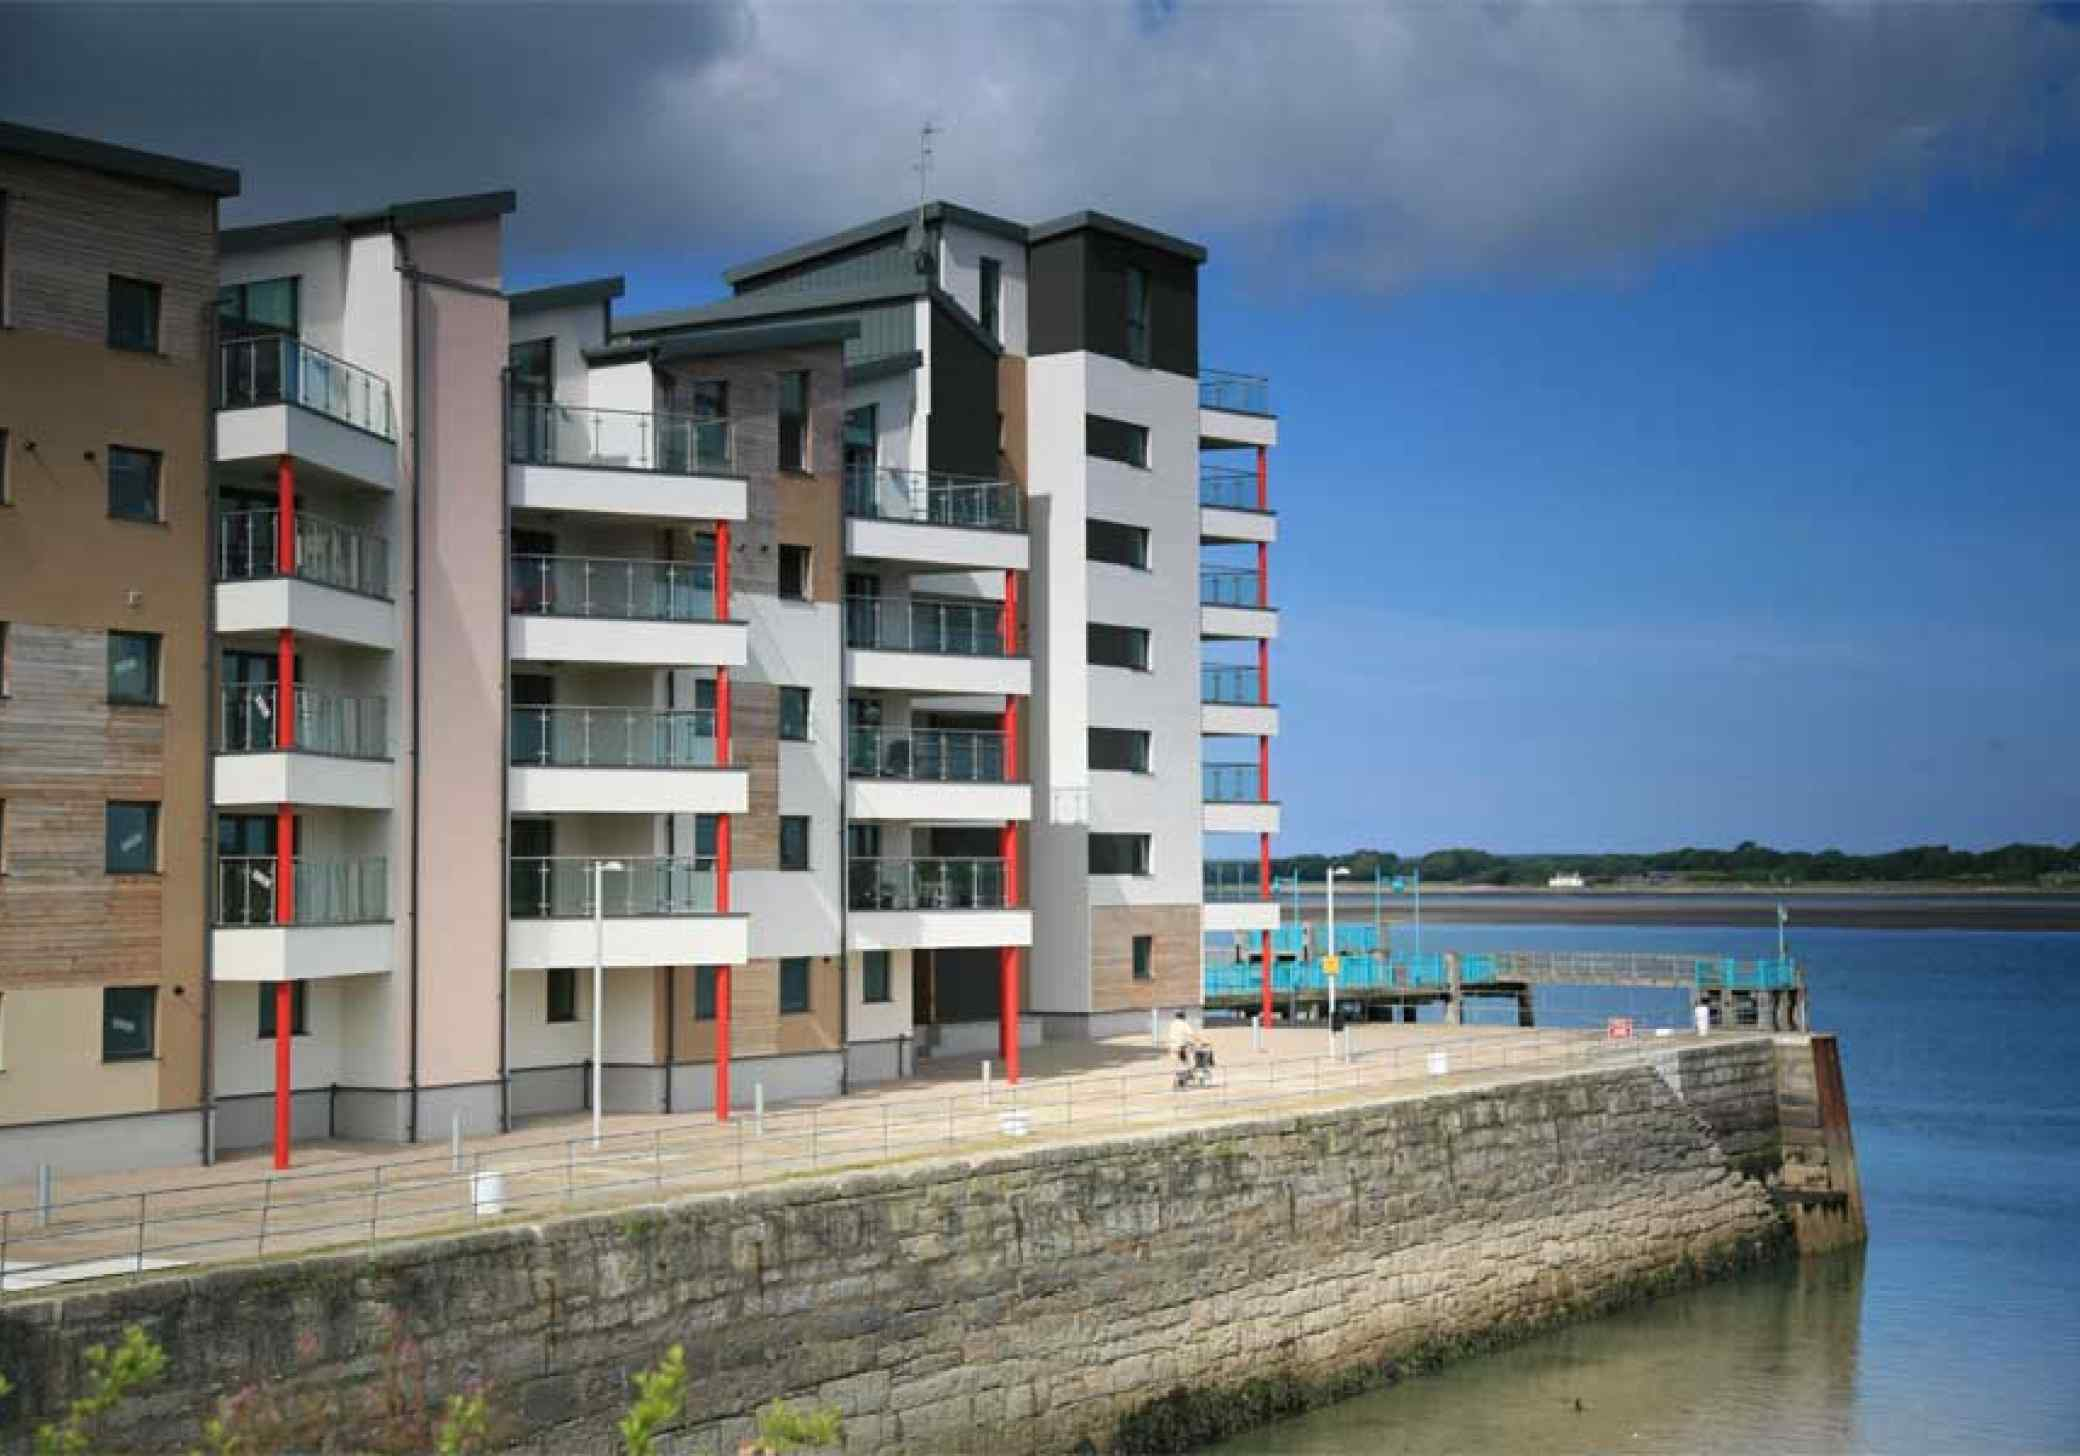 Apartment Scheme - Victoria Dock